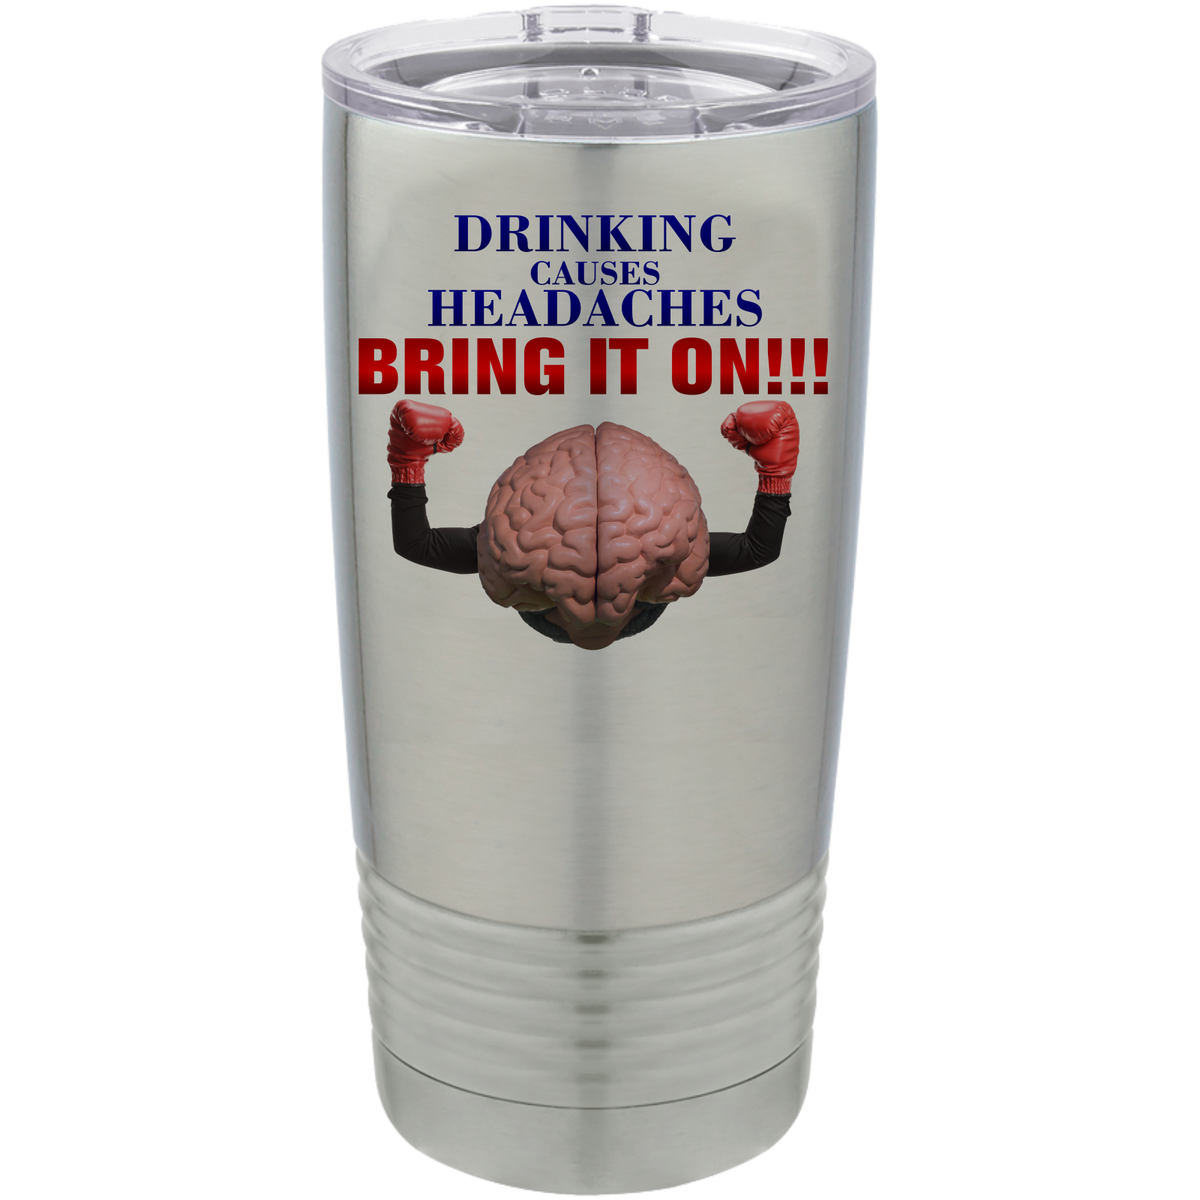 Drinking causes headaches, bring it on!!! - 20oz. Tumbler with Clear Lid